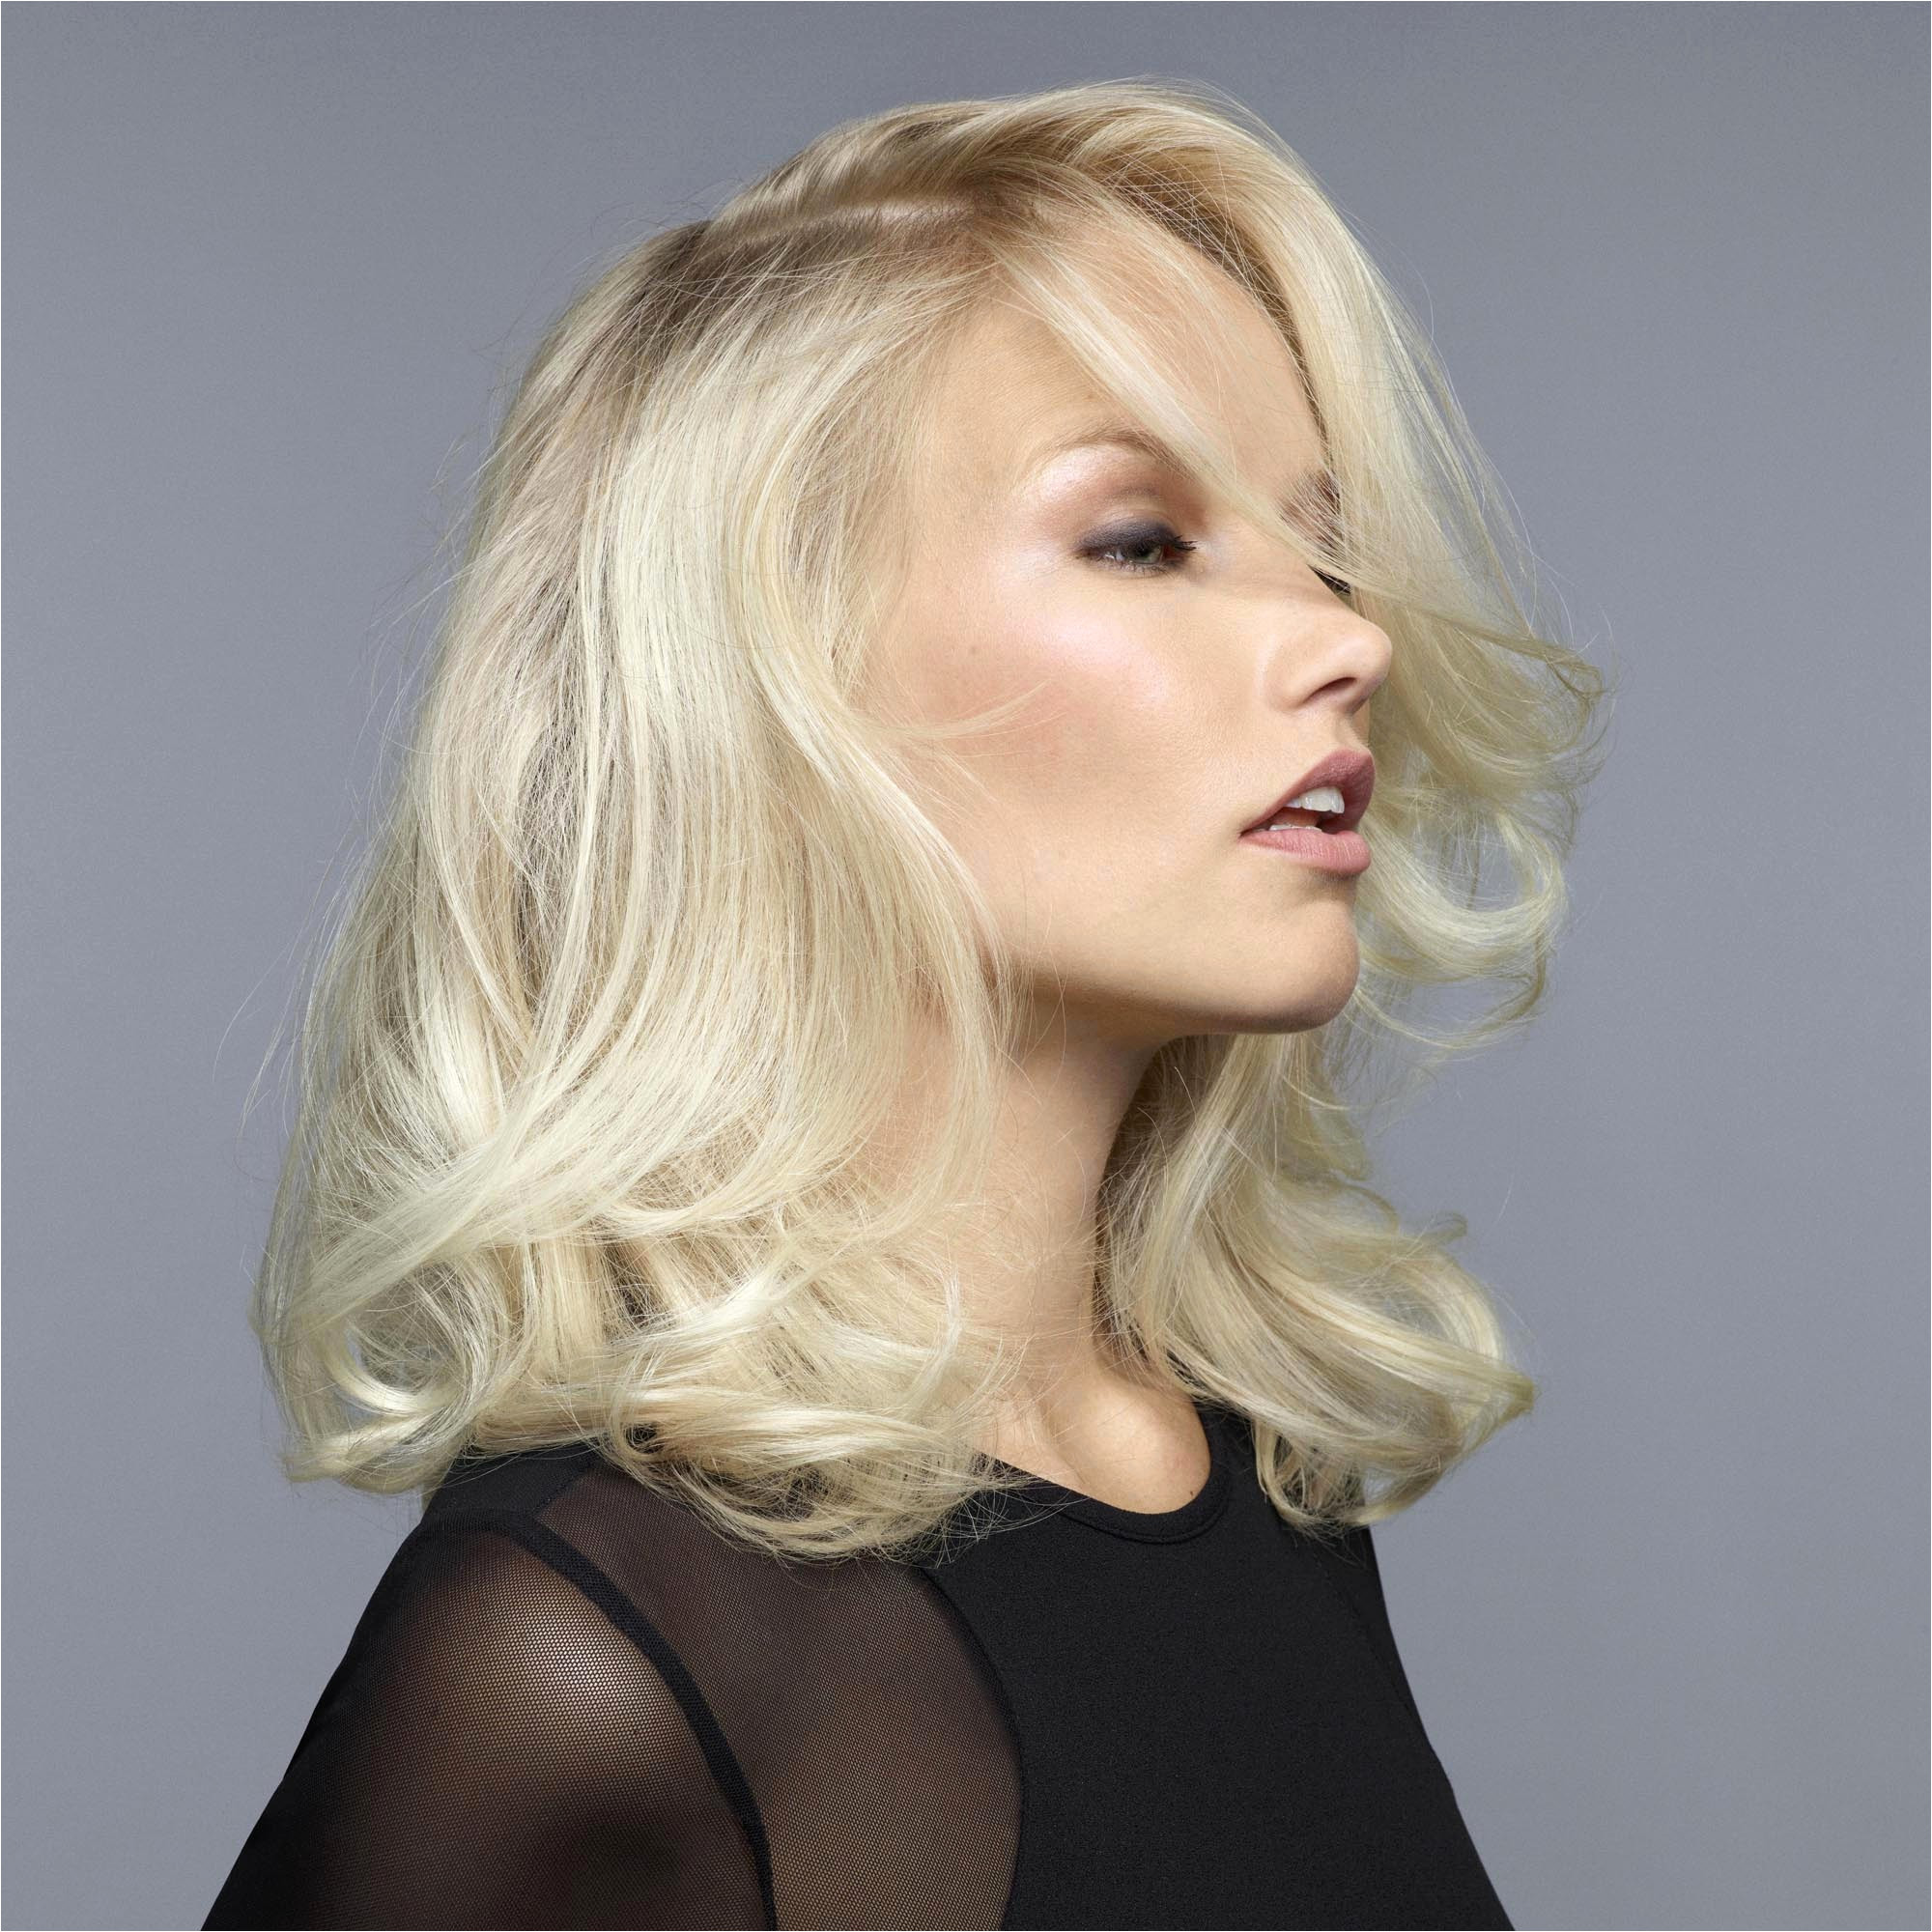 Girls Hairstyl Fresh Extraordinary Hairstyles for Men Luxury Haircuts 0d Excellent Luxury